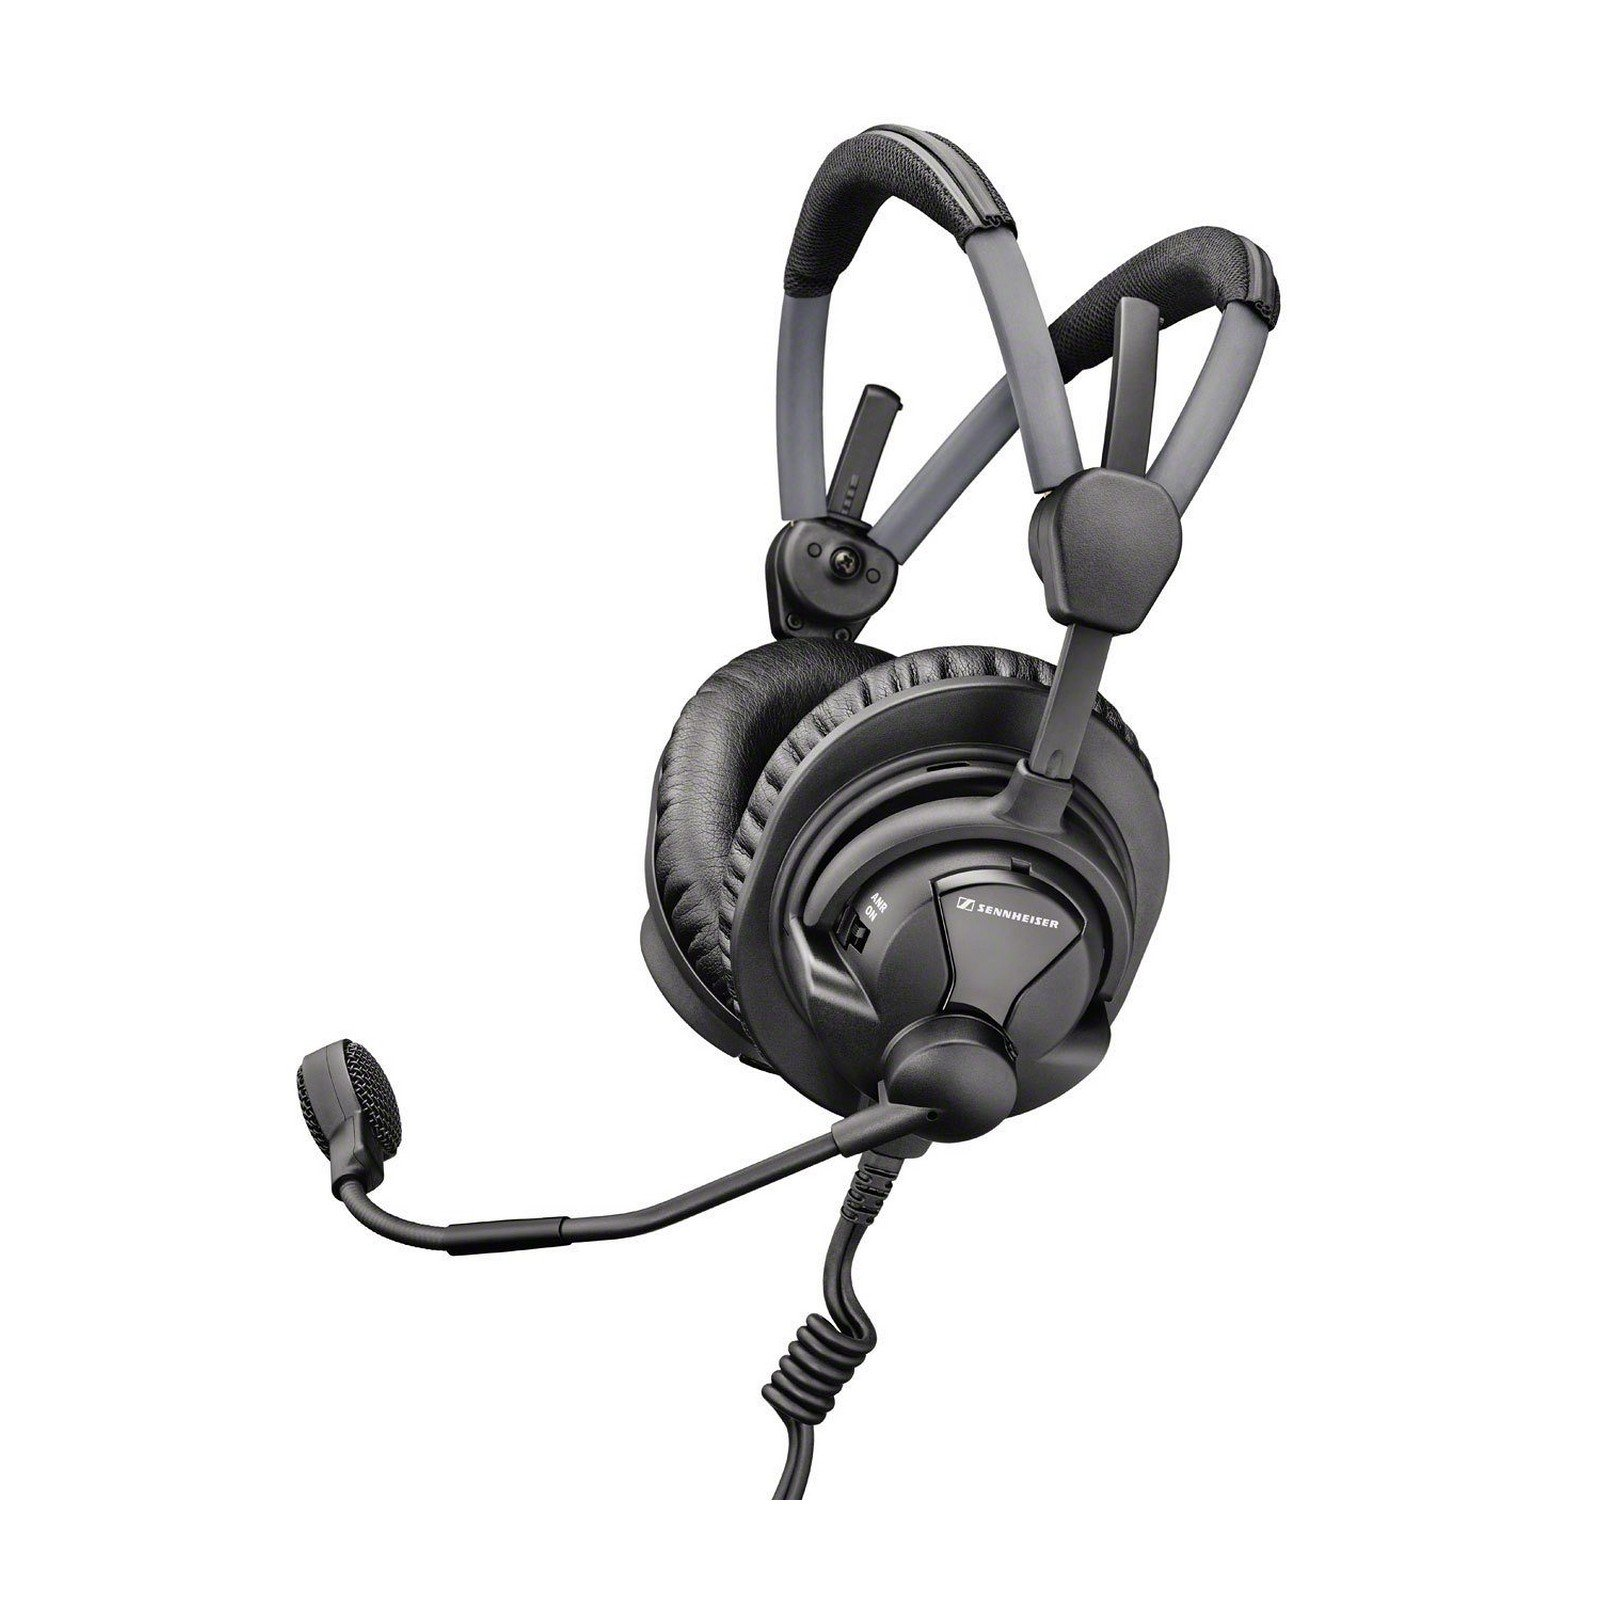 Sennheiser HMDC 27 | Closed Broadcast Headset with Noise Reduction